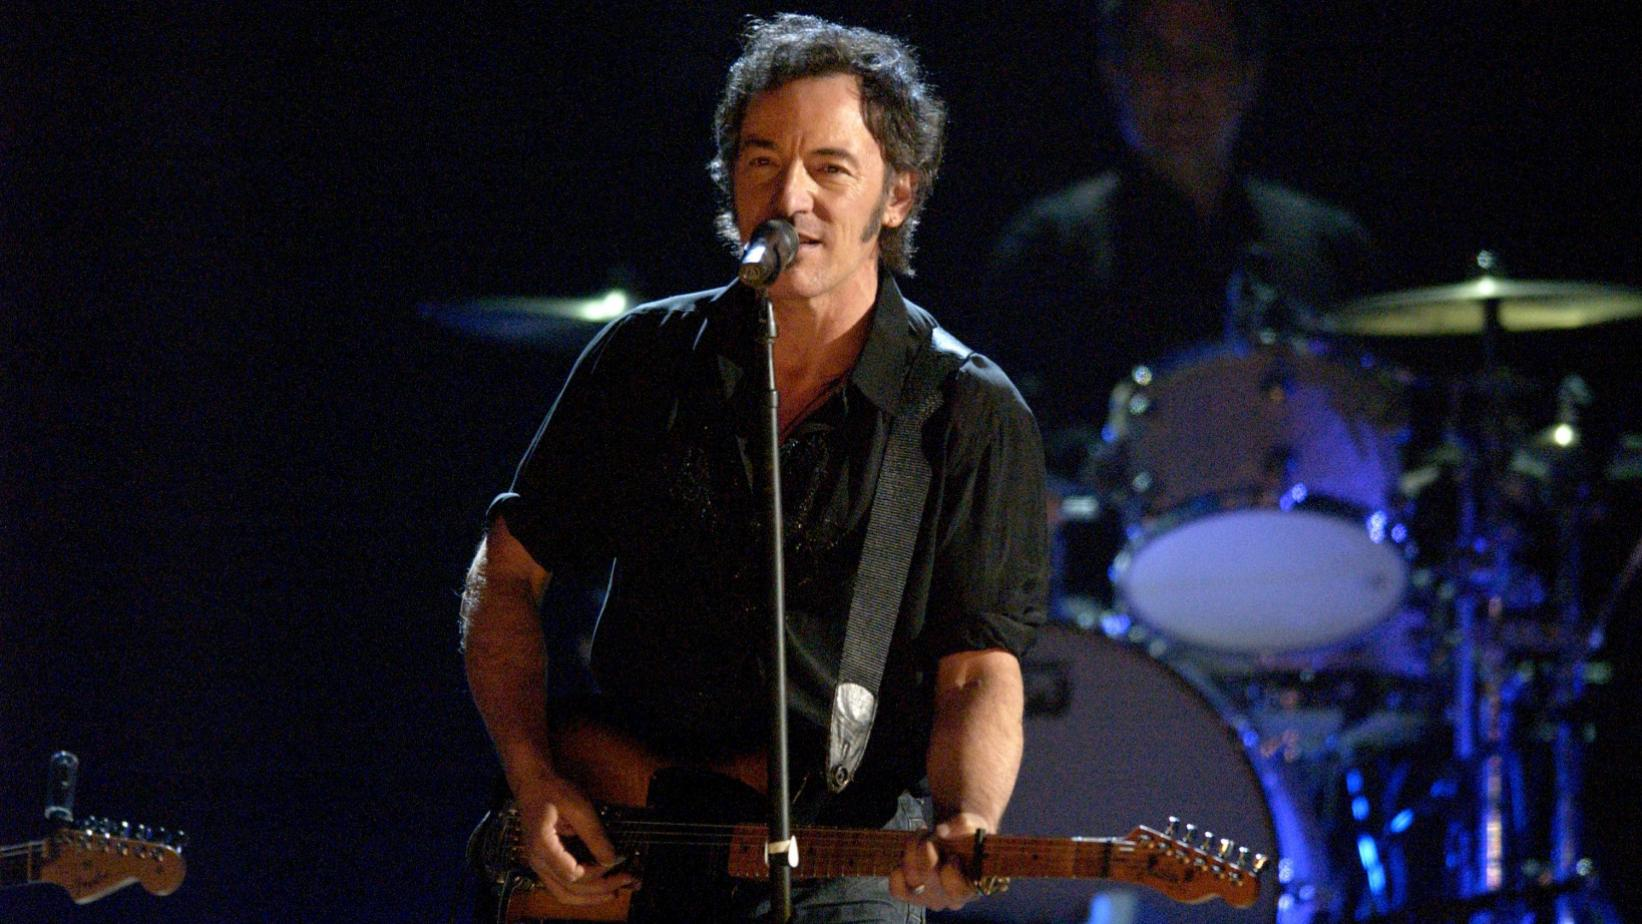 Bruce Springsteen performs at the 45th GRAMMYs